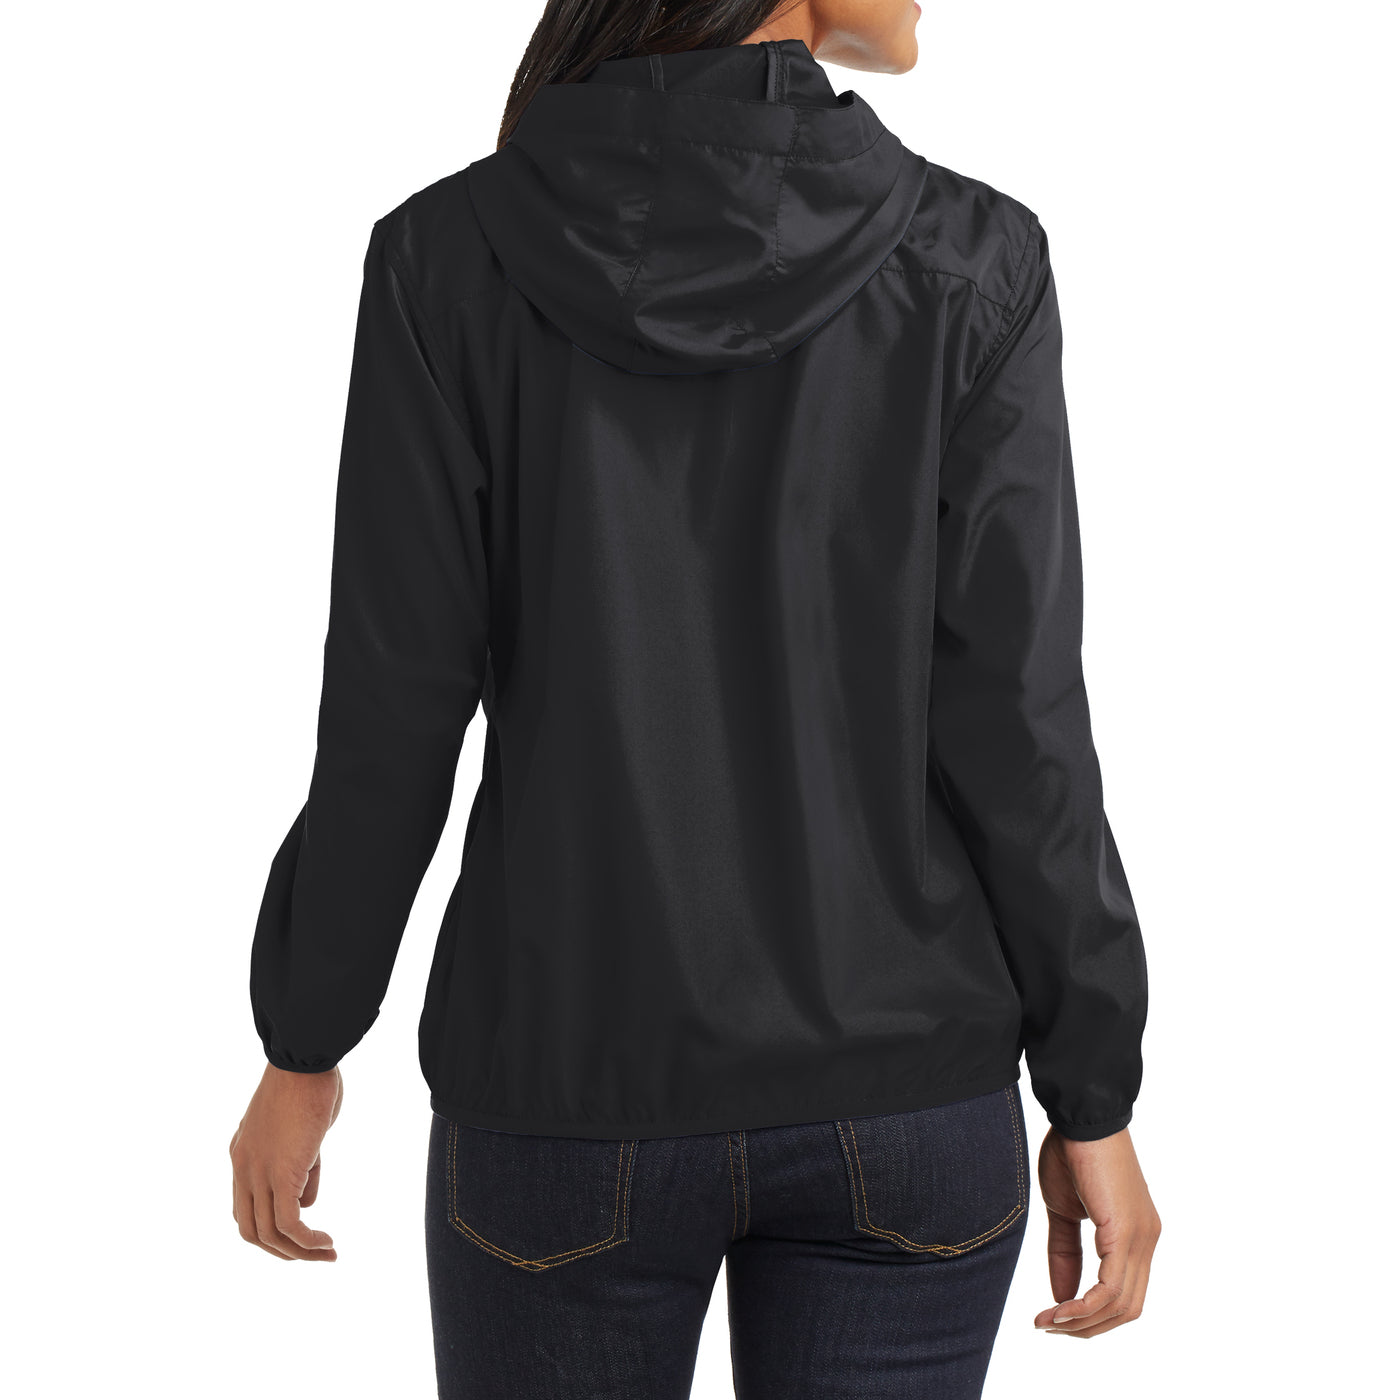 Women's Hooded Essential Jacket - Black - Back